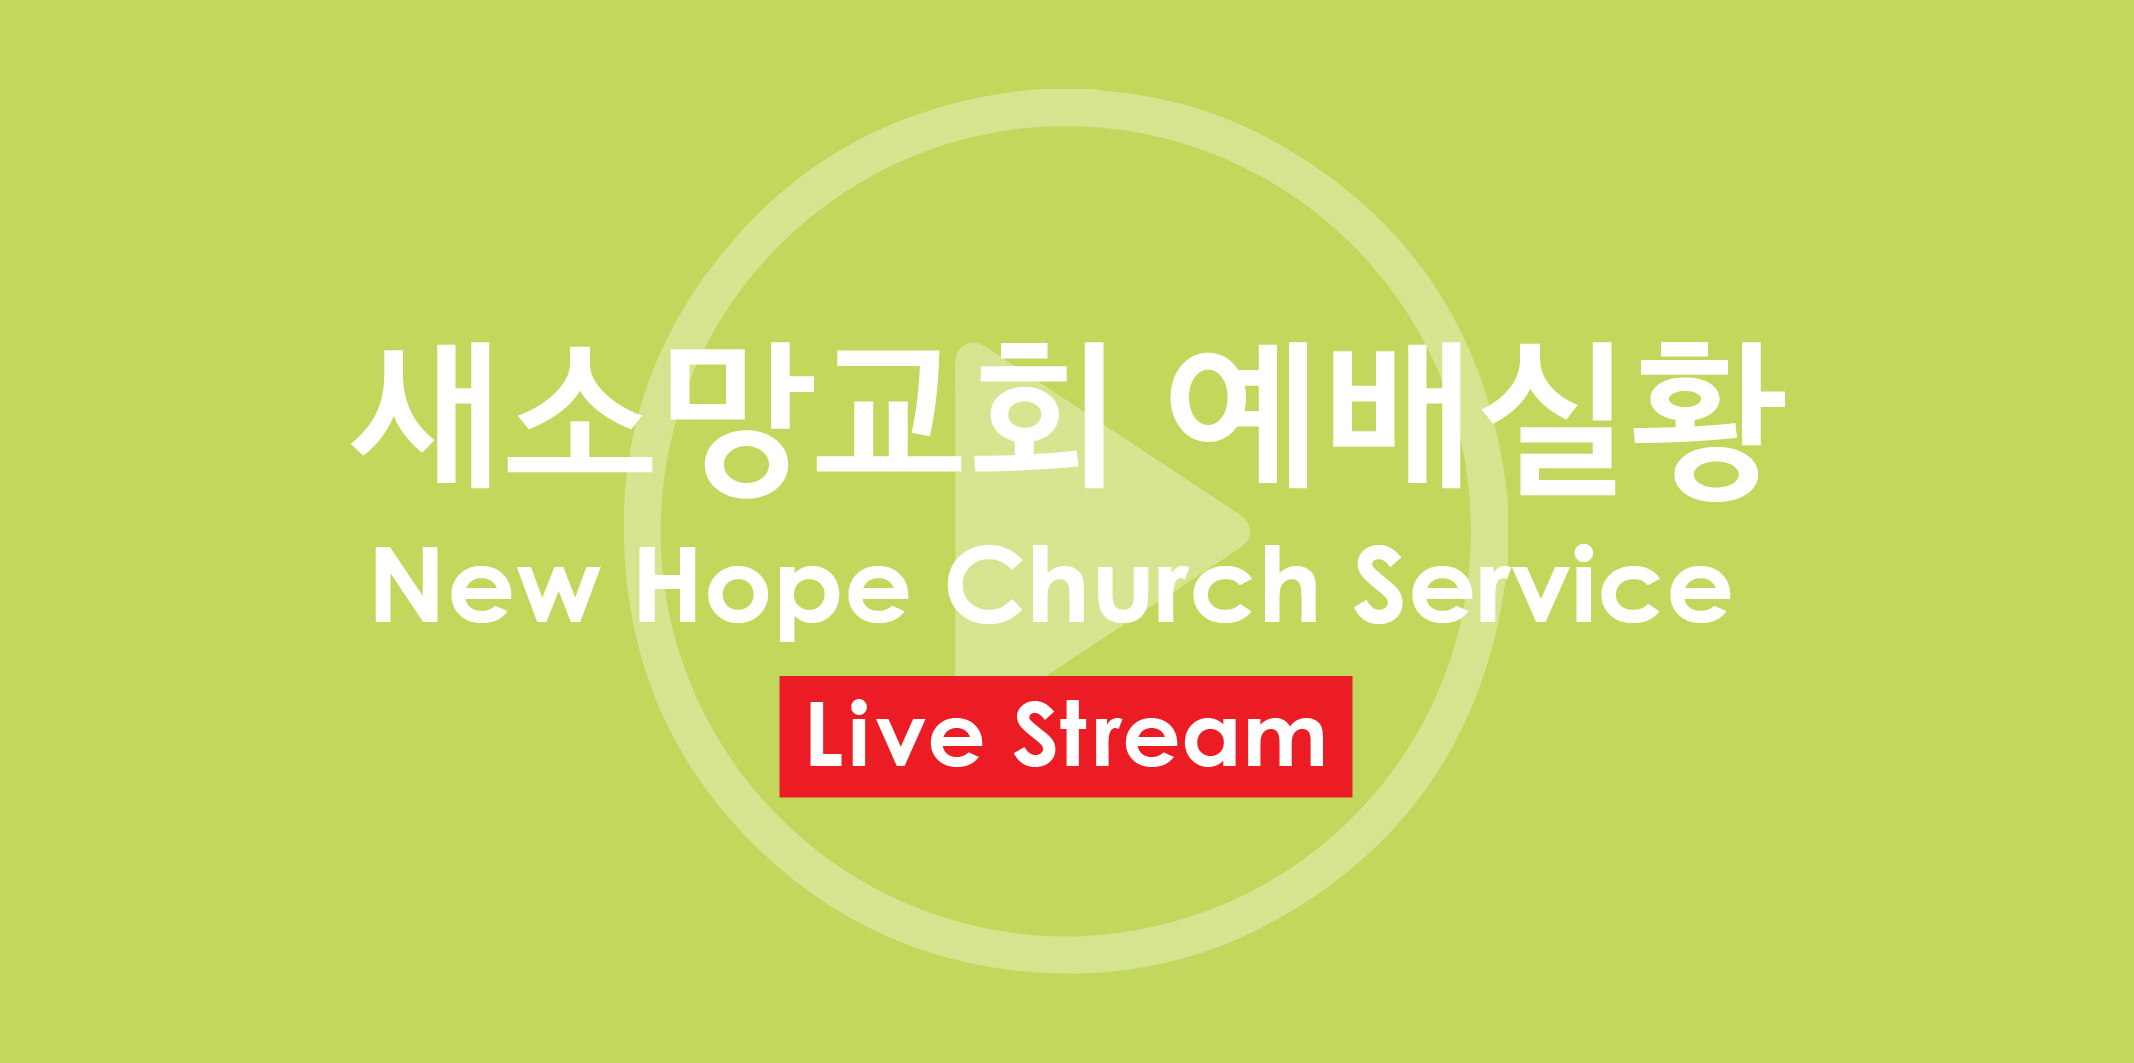 new hope church service live stream